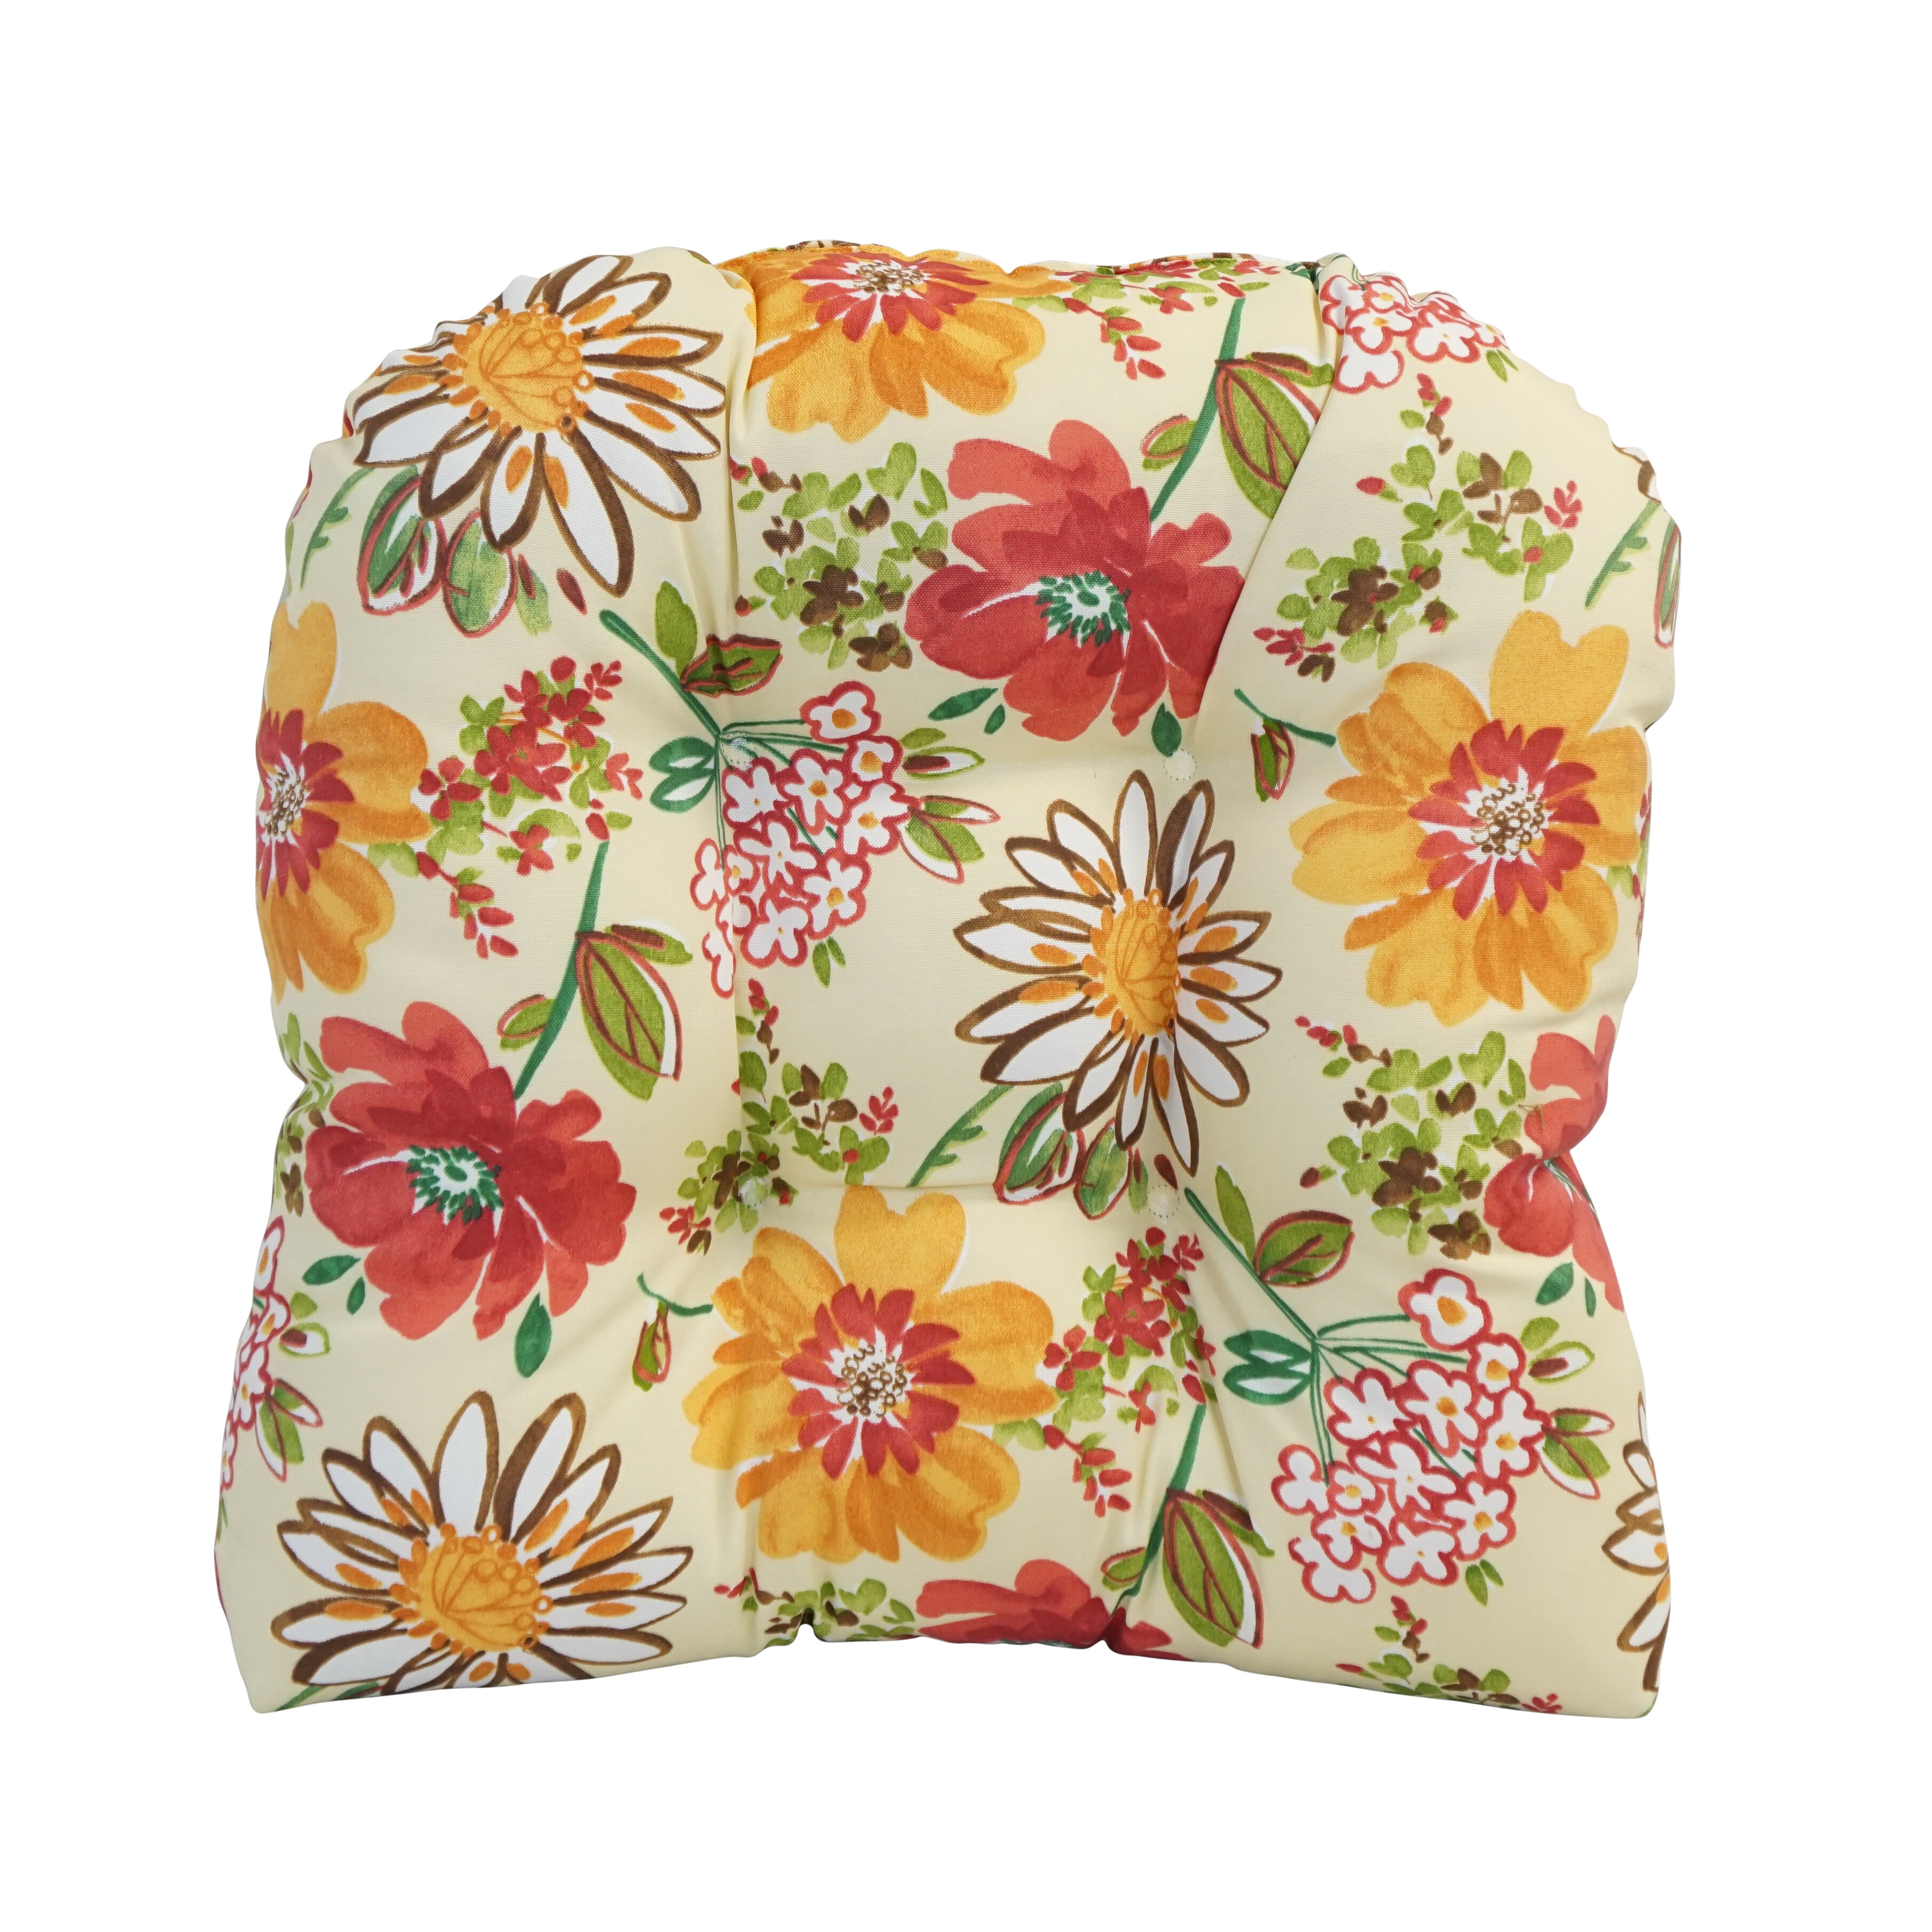 Tropical Chair Cushion Outdoor Uv Resistant Polyester With Vivid Floral Pattern